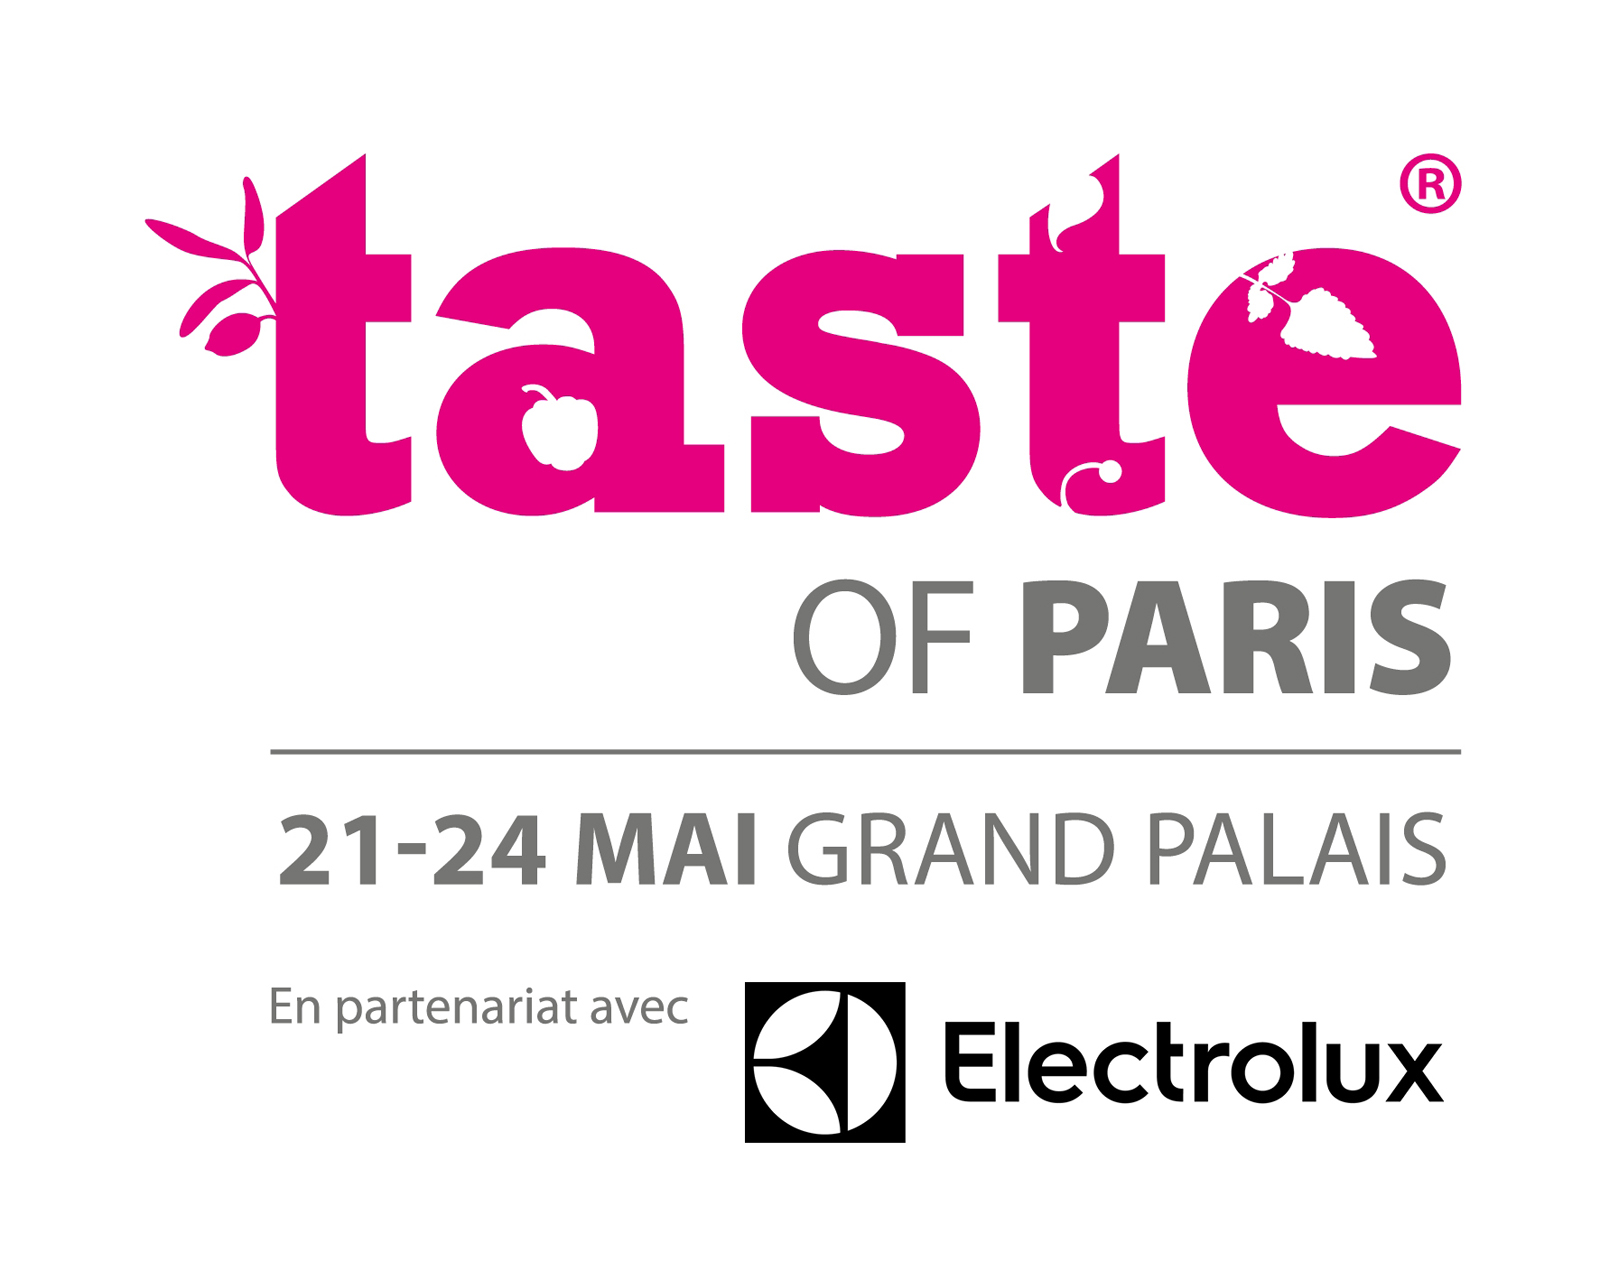 taste of paris festival culinaire grand palais paris cuisine gastronomie atelier animation découverte affiche blog United states of paris